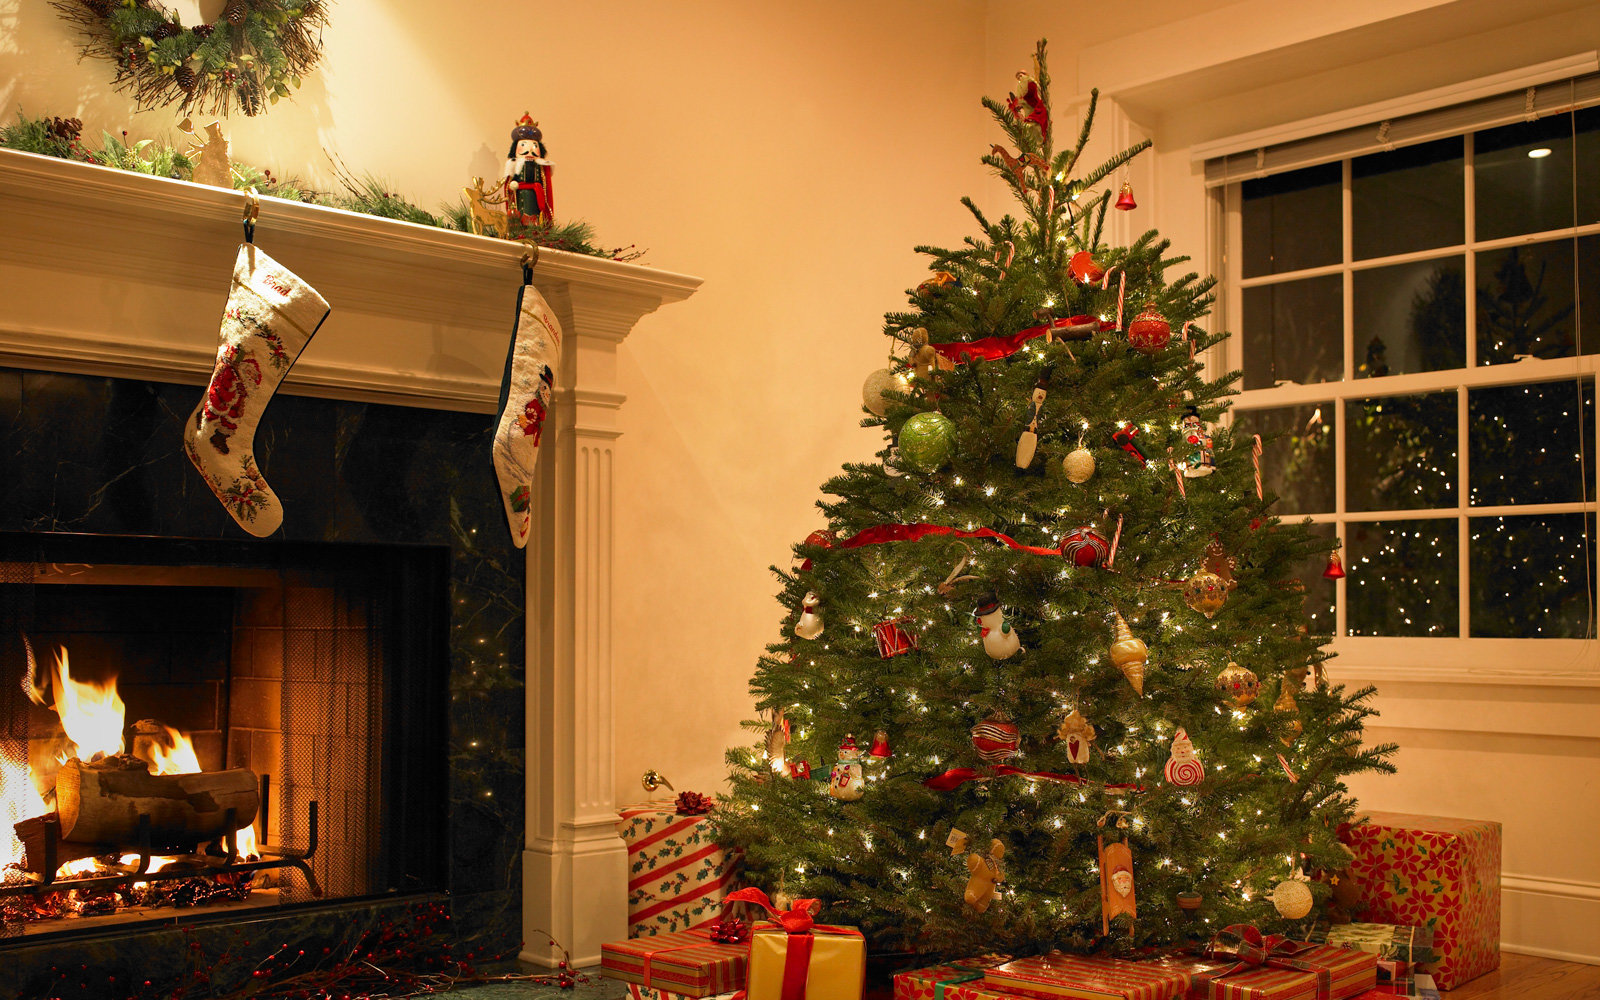 Your Christmas Tree Might Be Covered in Bugs